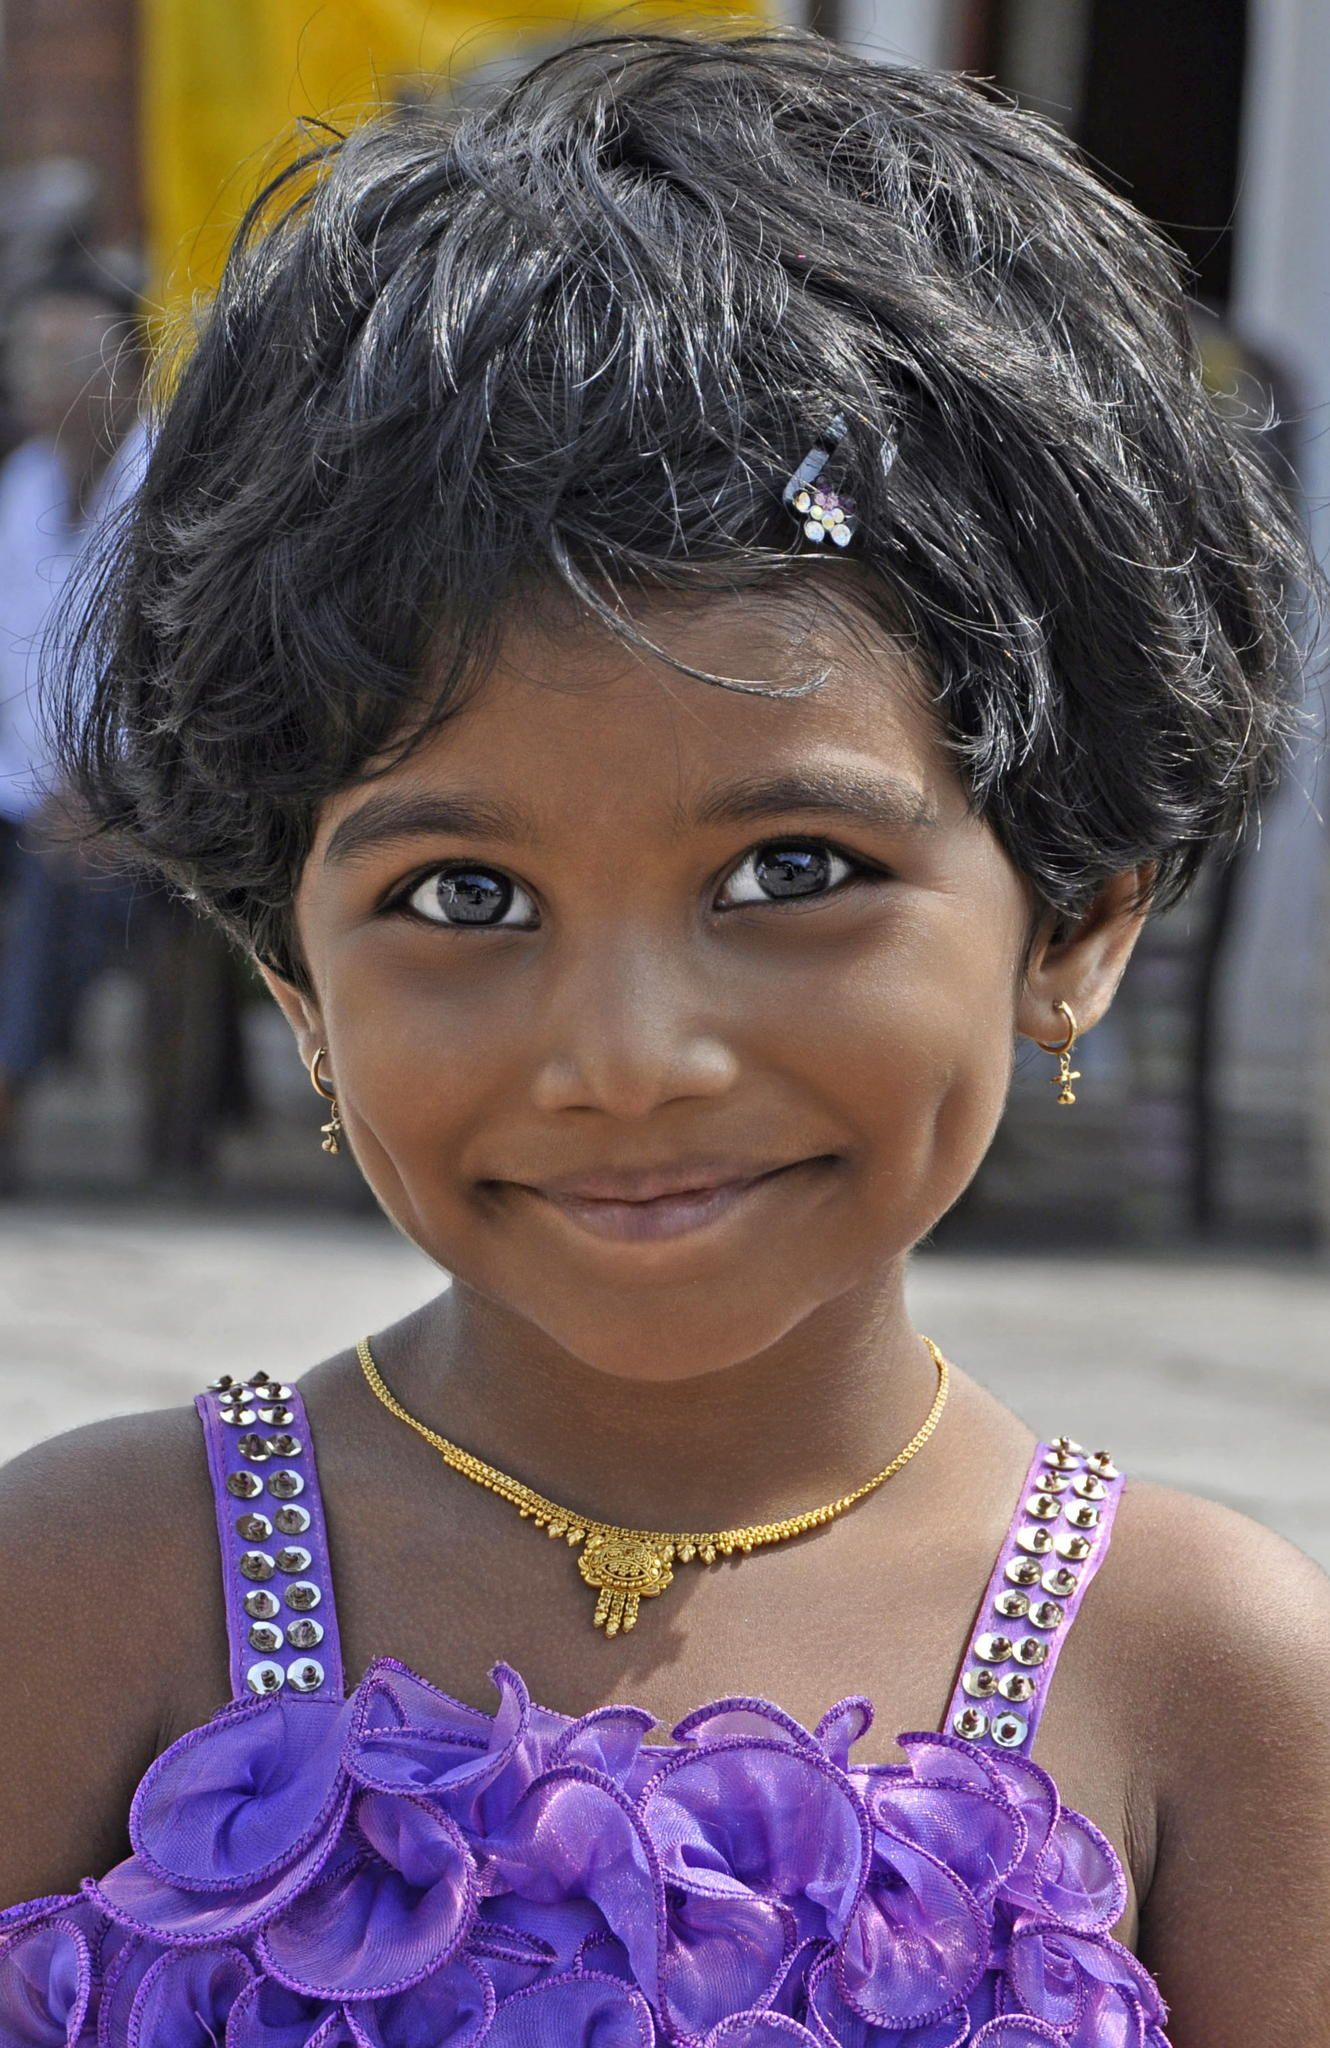 Dimples in India~~What a lovely little girl   even her eyes